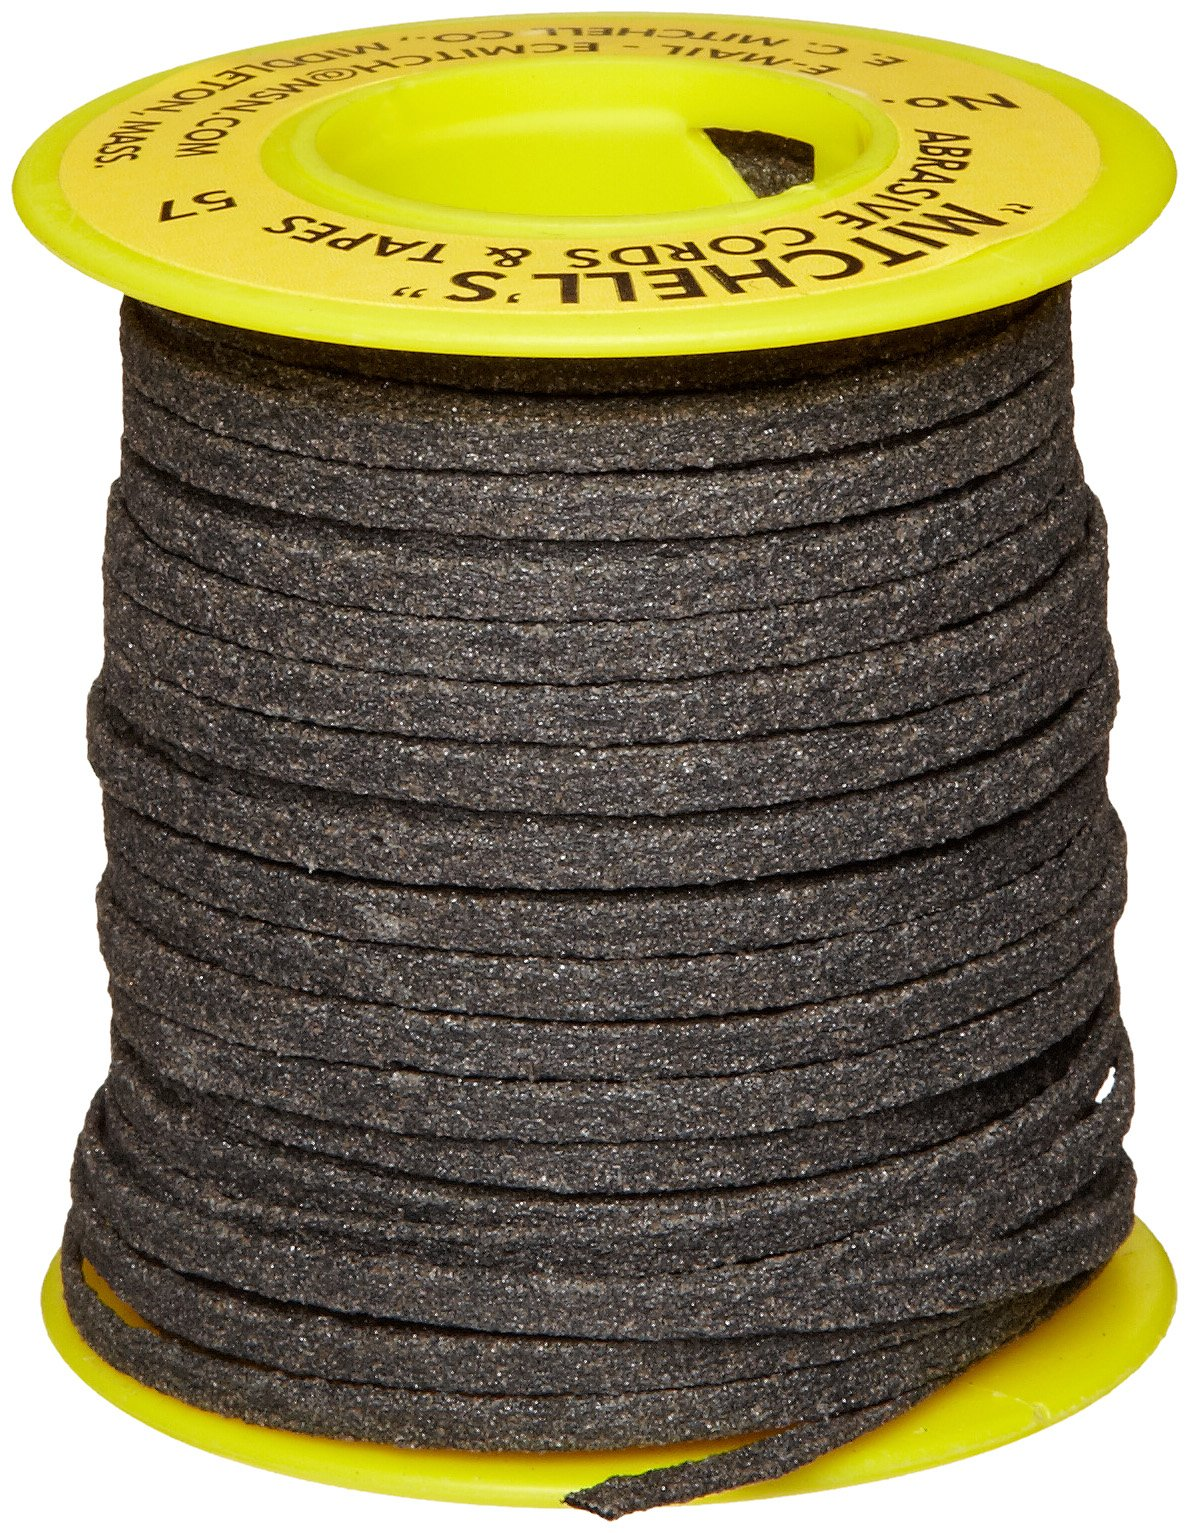 Mitchell Abrasives 57 Flat Abrasive Tape, Aluminum Oxide 150 Grit 1/8'' Wide x 50 Feet by Mitchell Abrasives